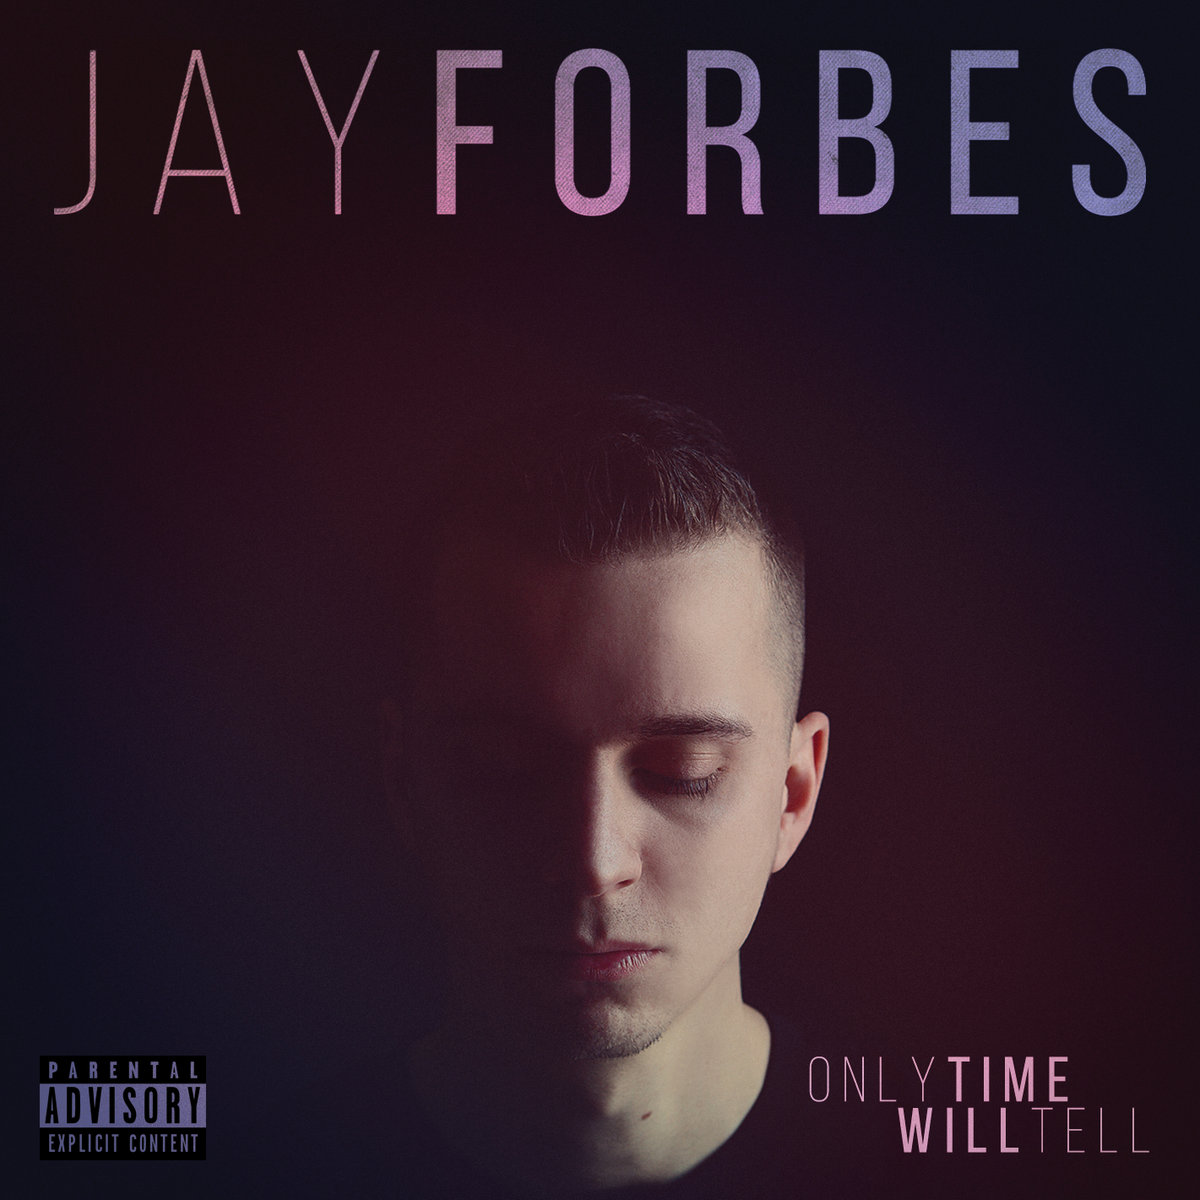 jay forbes